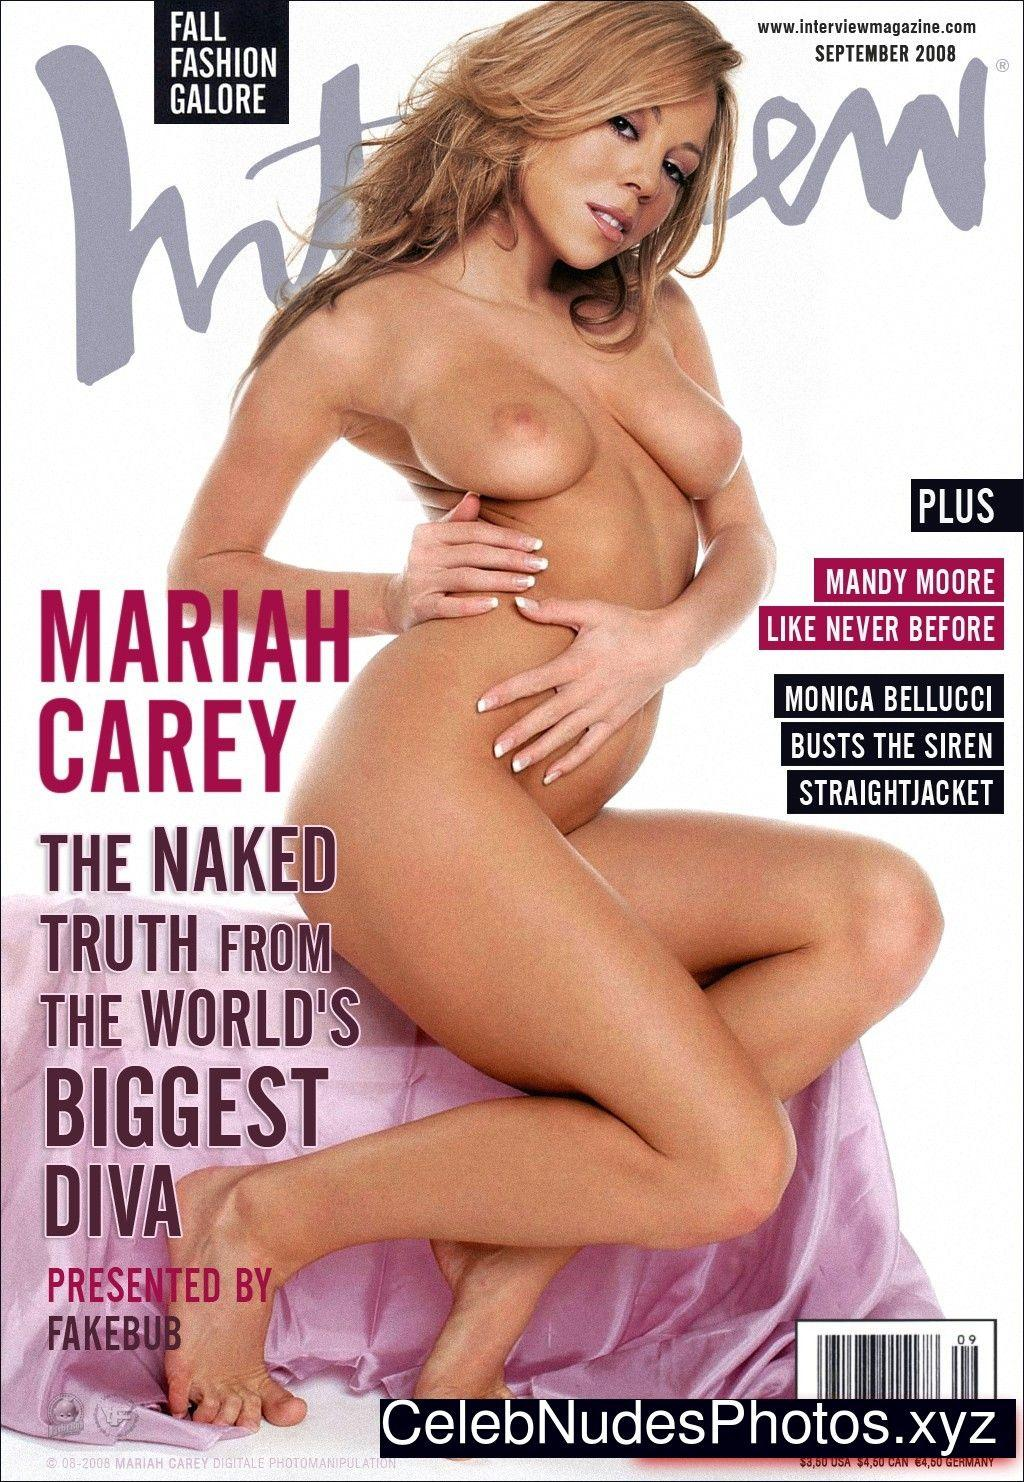 Were visited mariah carey look alike porn pics curious